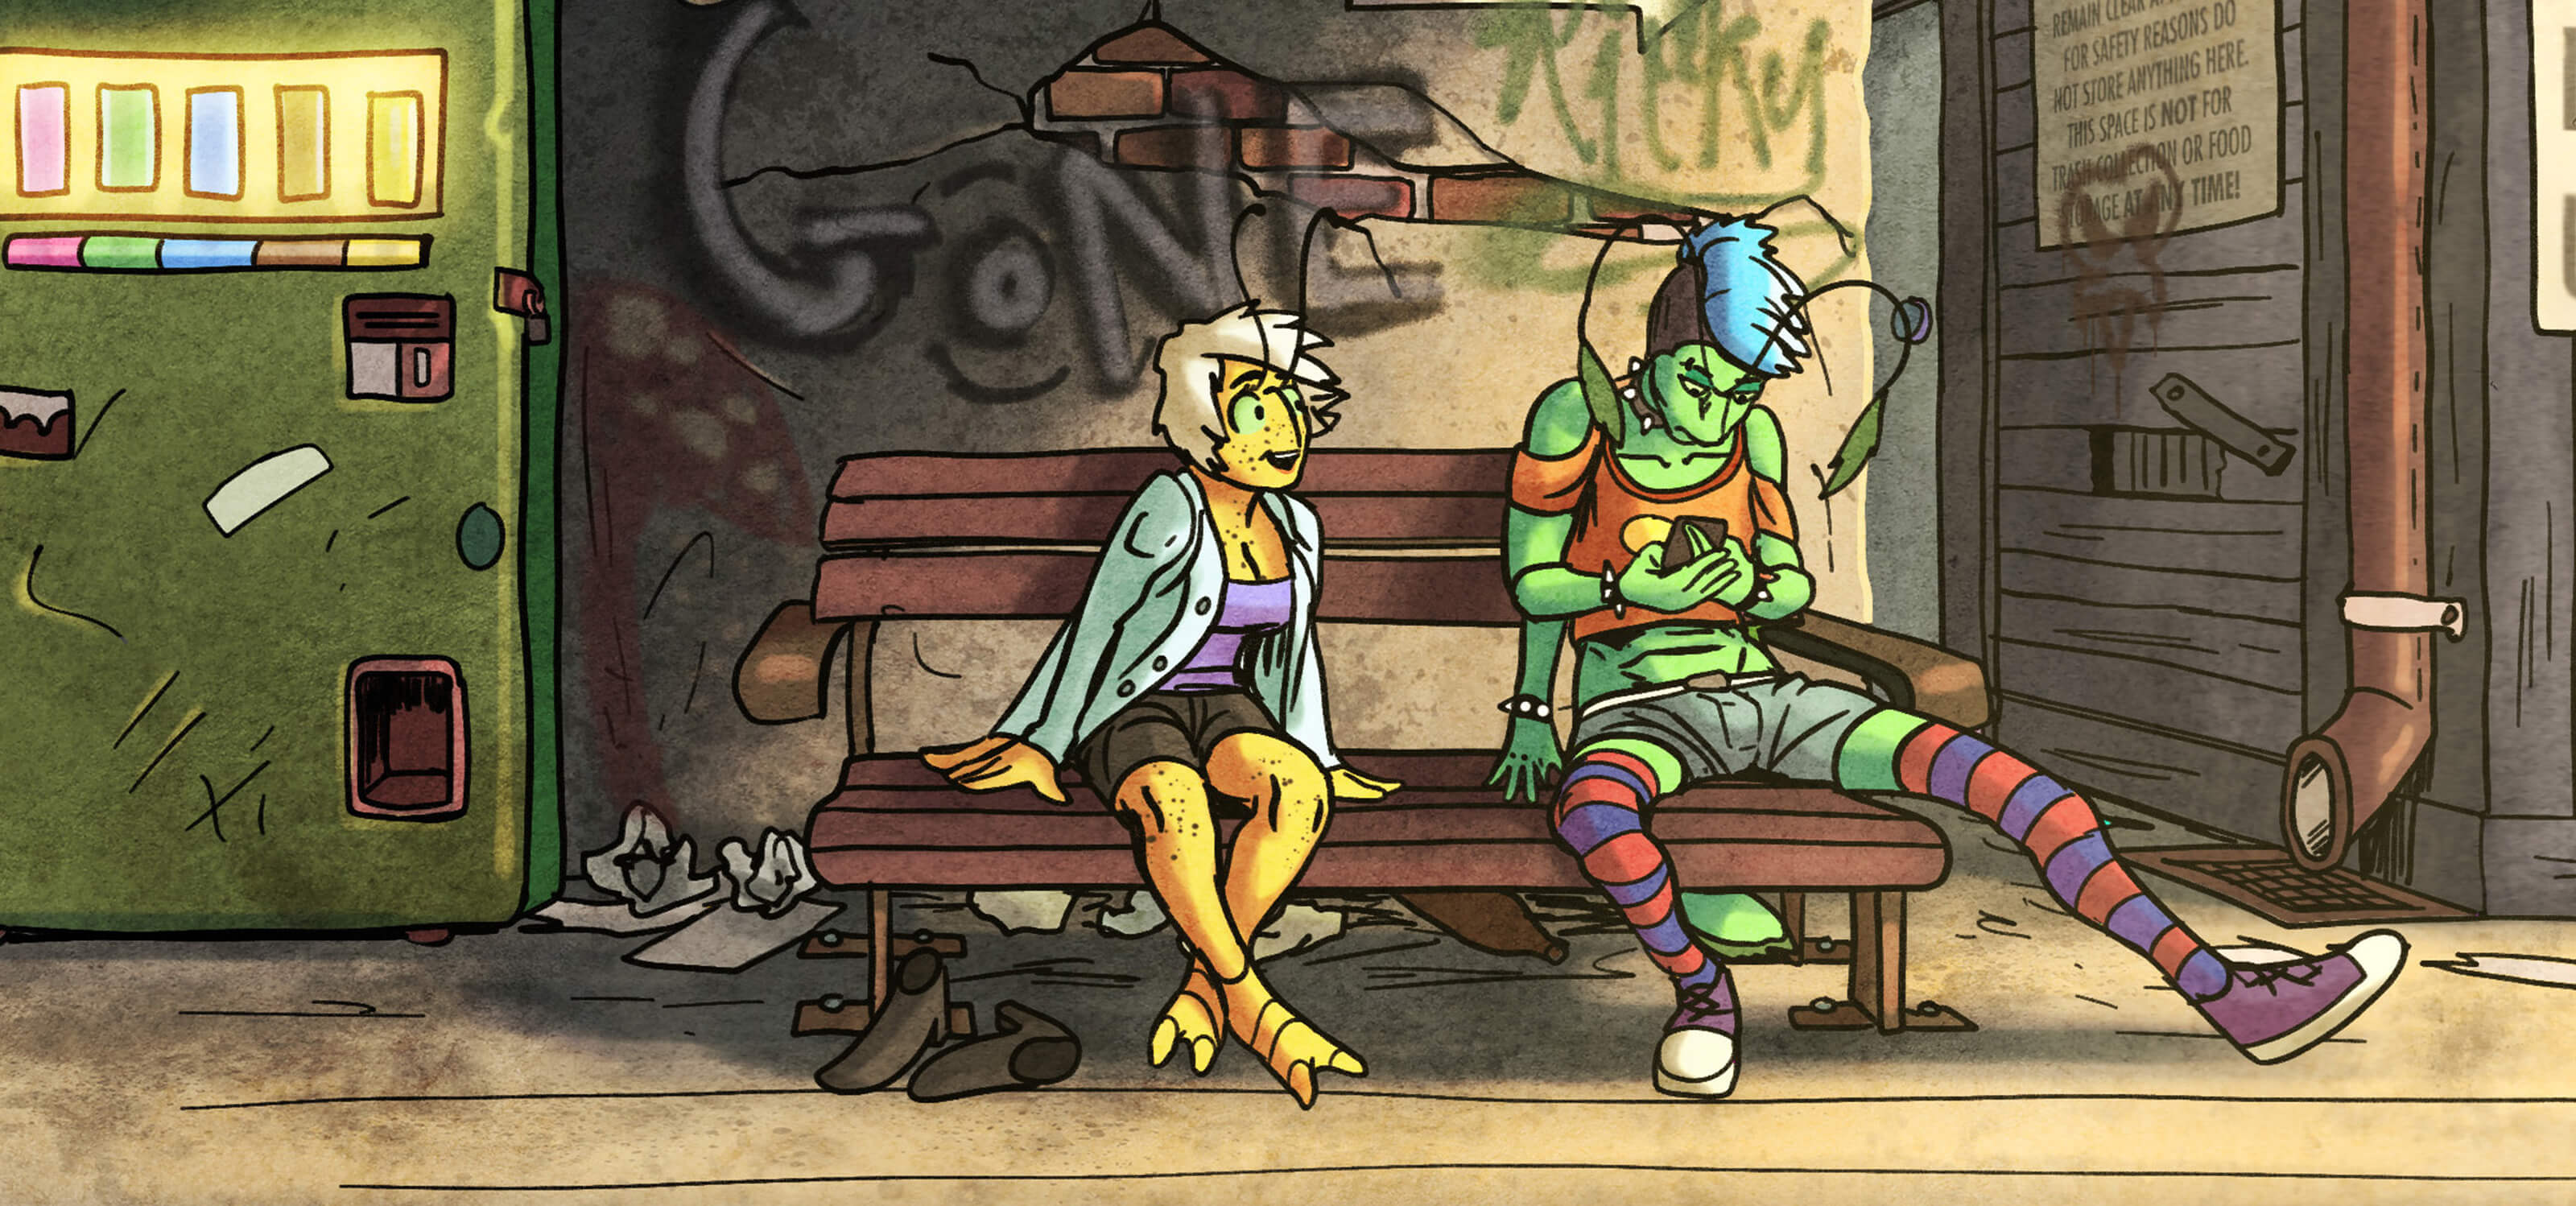 """Two bugs from the """"Coleary"""" graphic novel sit next to each other on a city bench."""